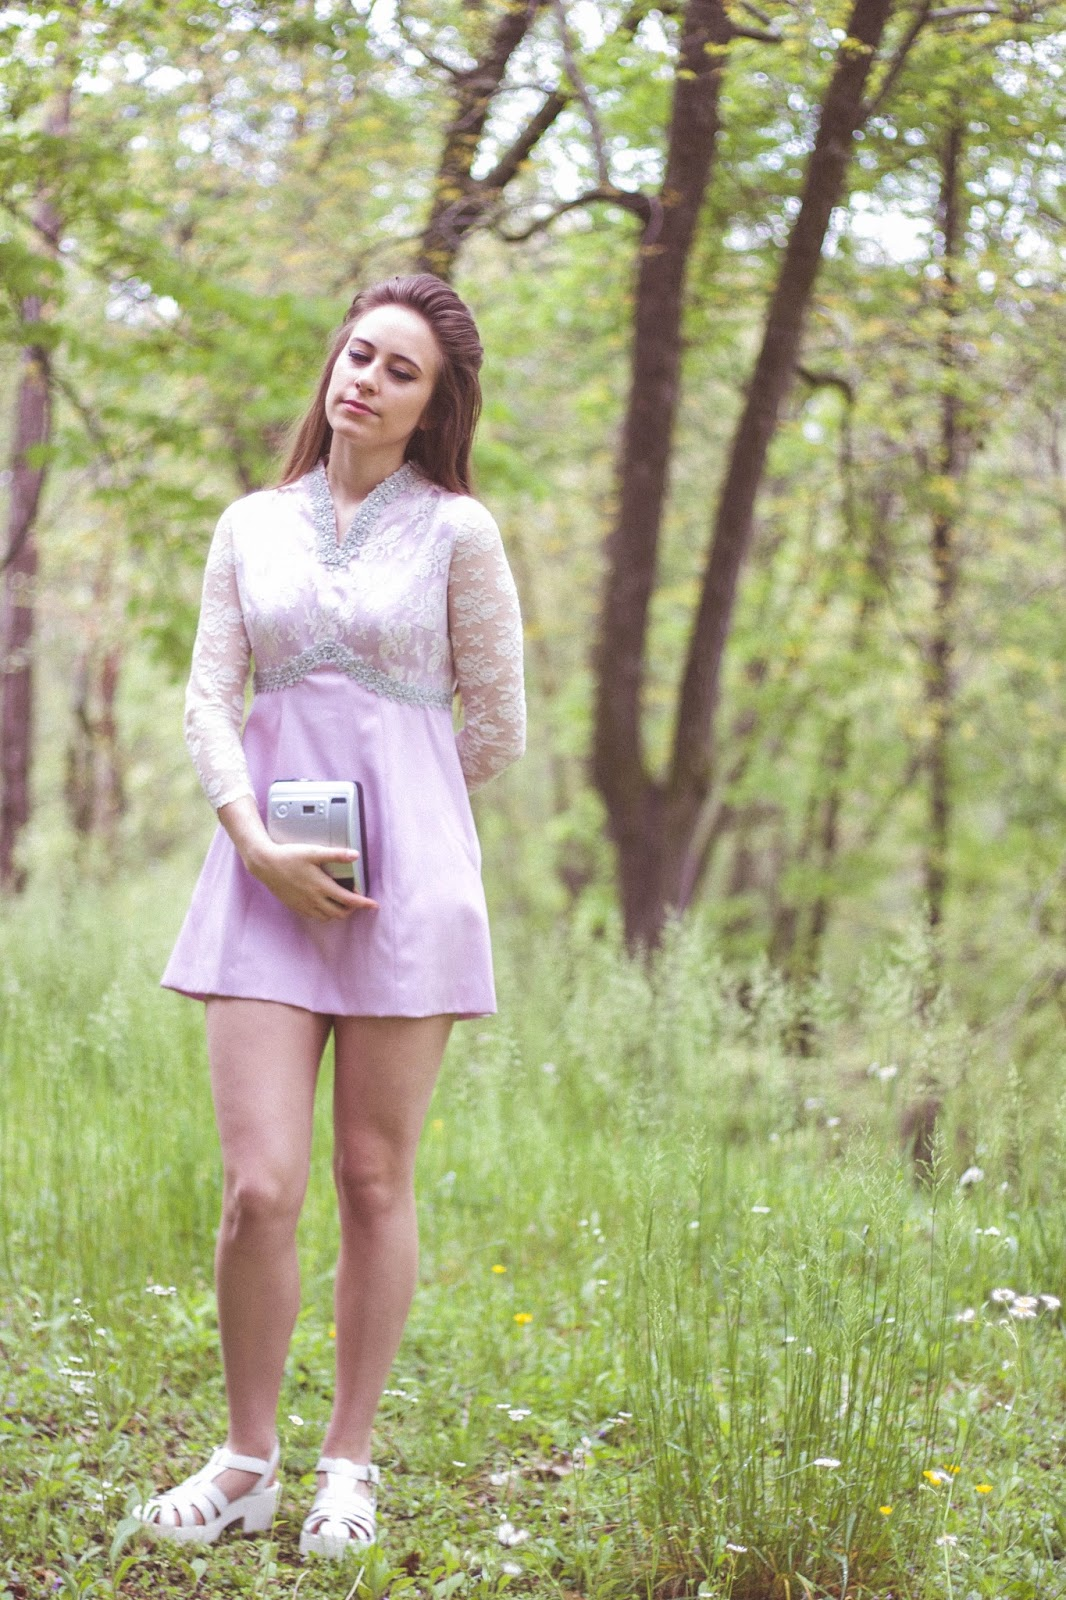 Priscilla Presley, style, mini dress, summer, outfit, micro mini, retro, 1960's, purple dress, polaroid, fashion, vintage, style blogger, film blogger, girly, lana del rey style, spring style